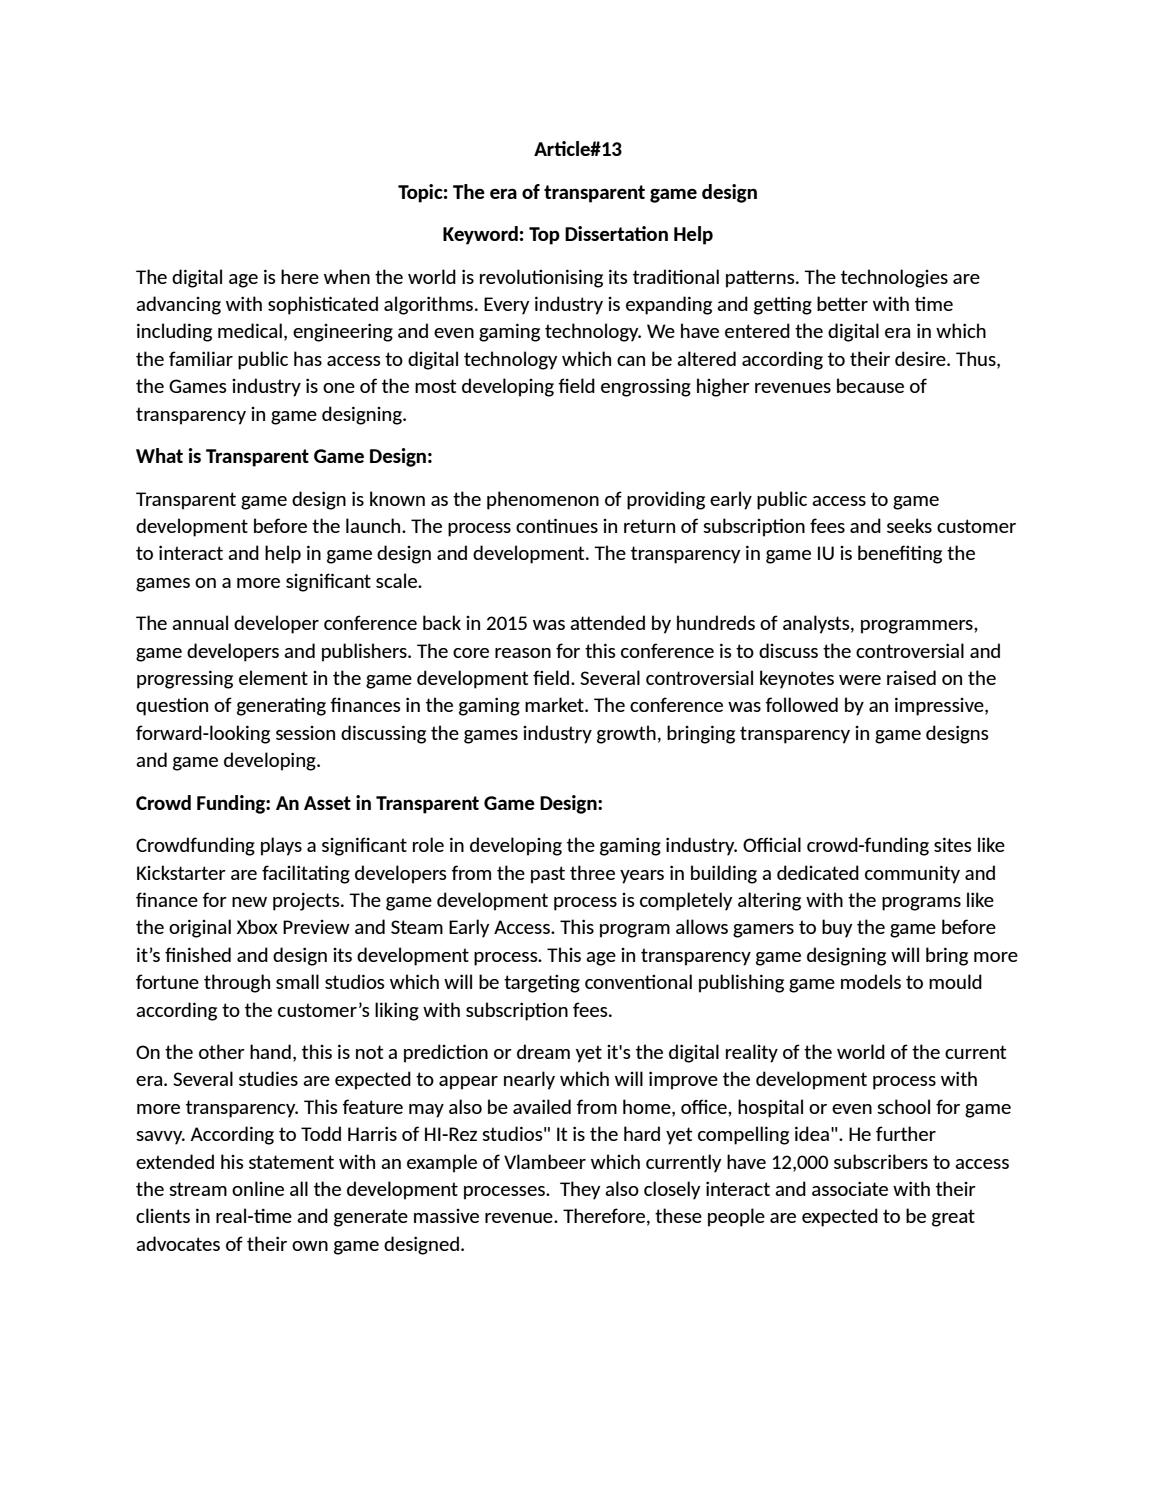 Professional dissertation chapter proofreading services uk